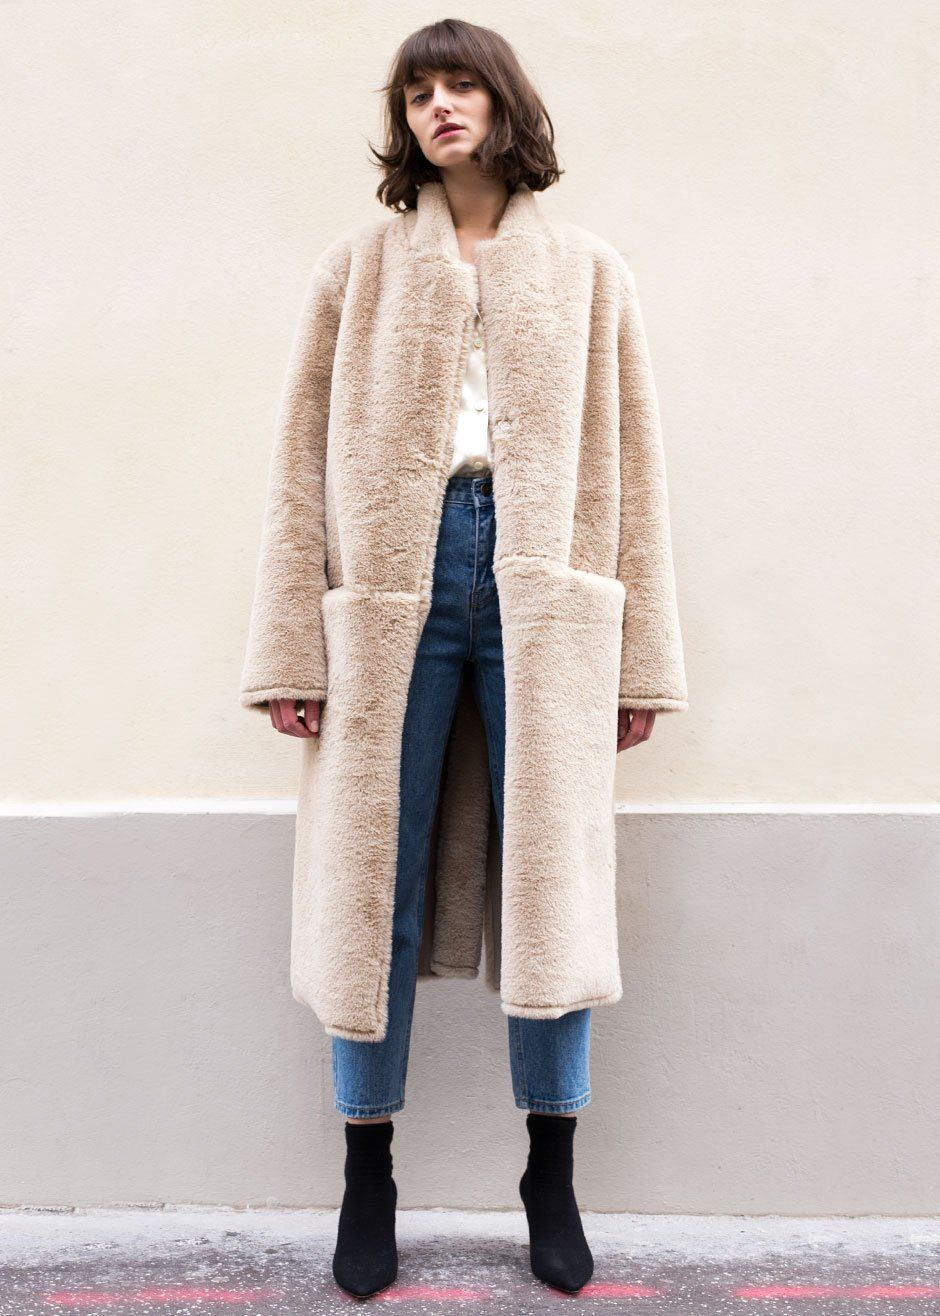 Women Outfits with Shearling Coats-19 Ways to Wear Stylishly Women Outfits with Shearling Coats-19 Ways to Wear Stylishly new pictures